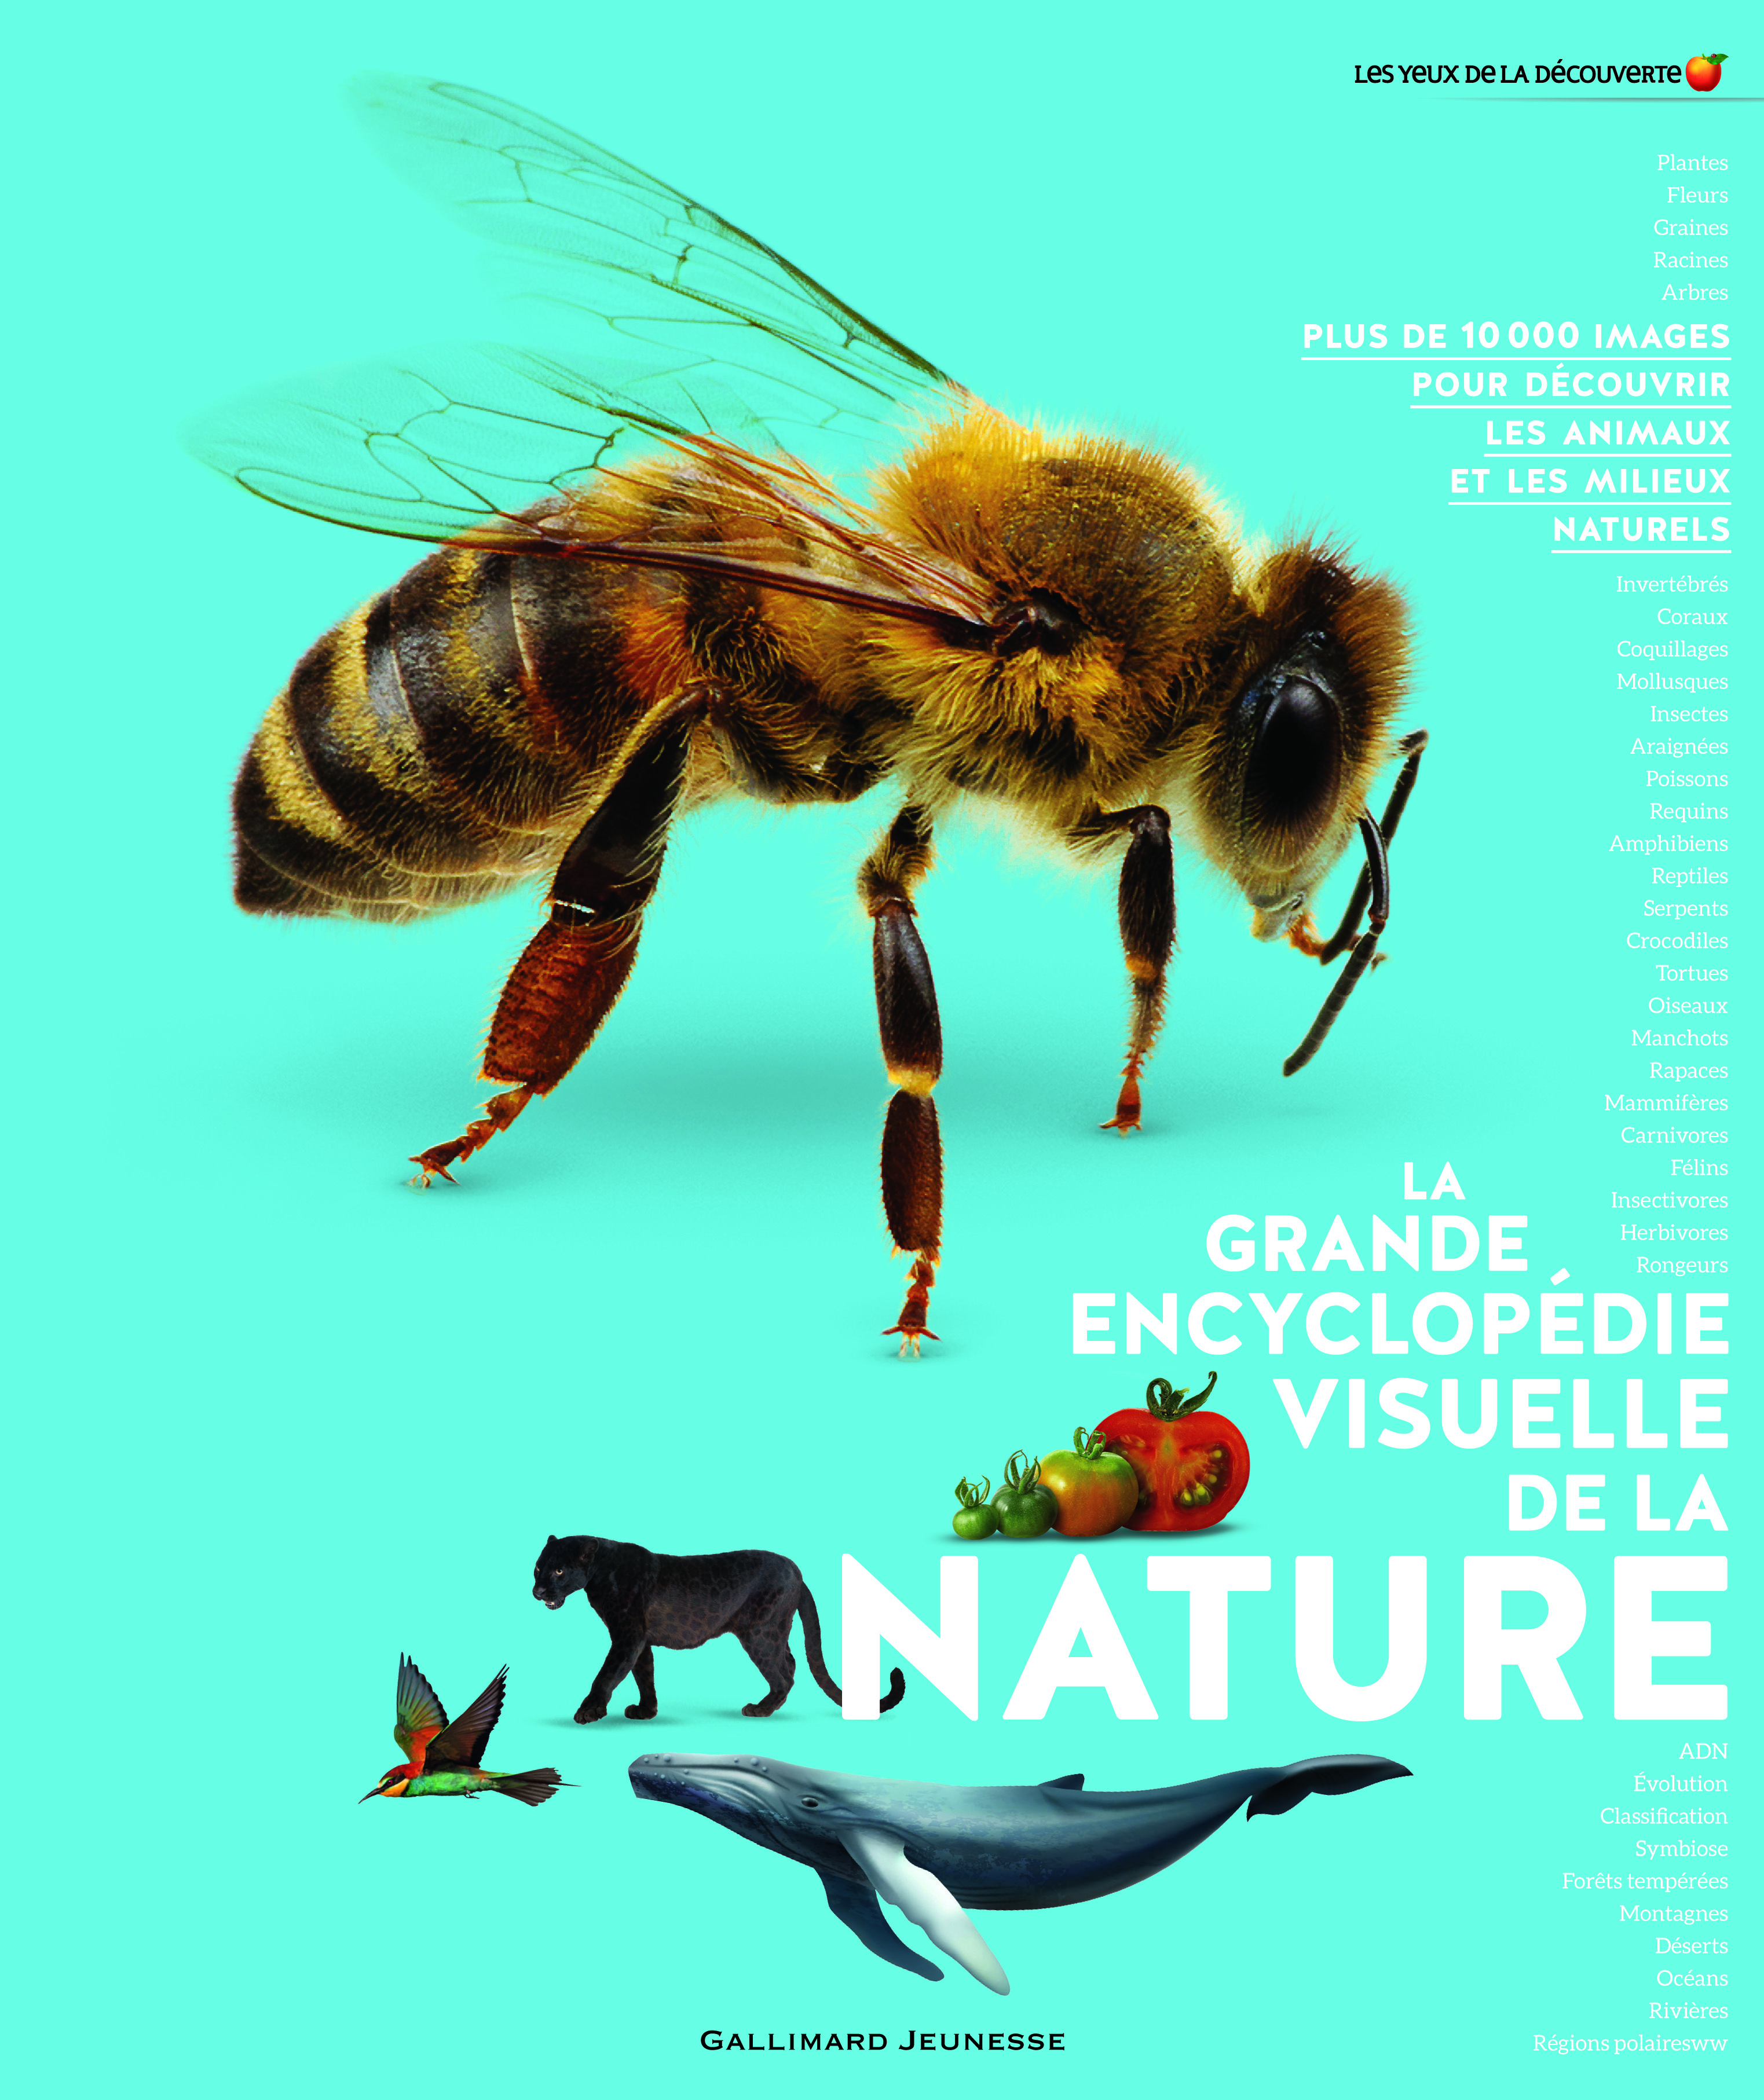 LA GRANDE ENCYCLOPEDIE VISUELLE DE LA NATURE